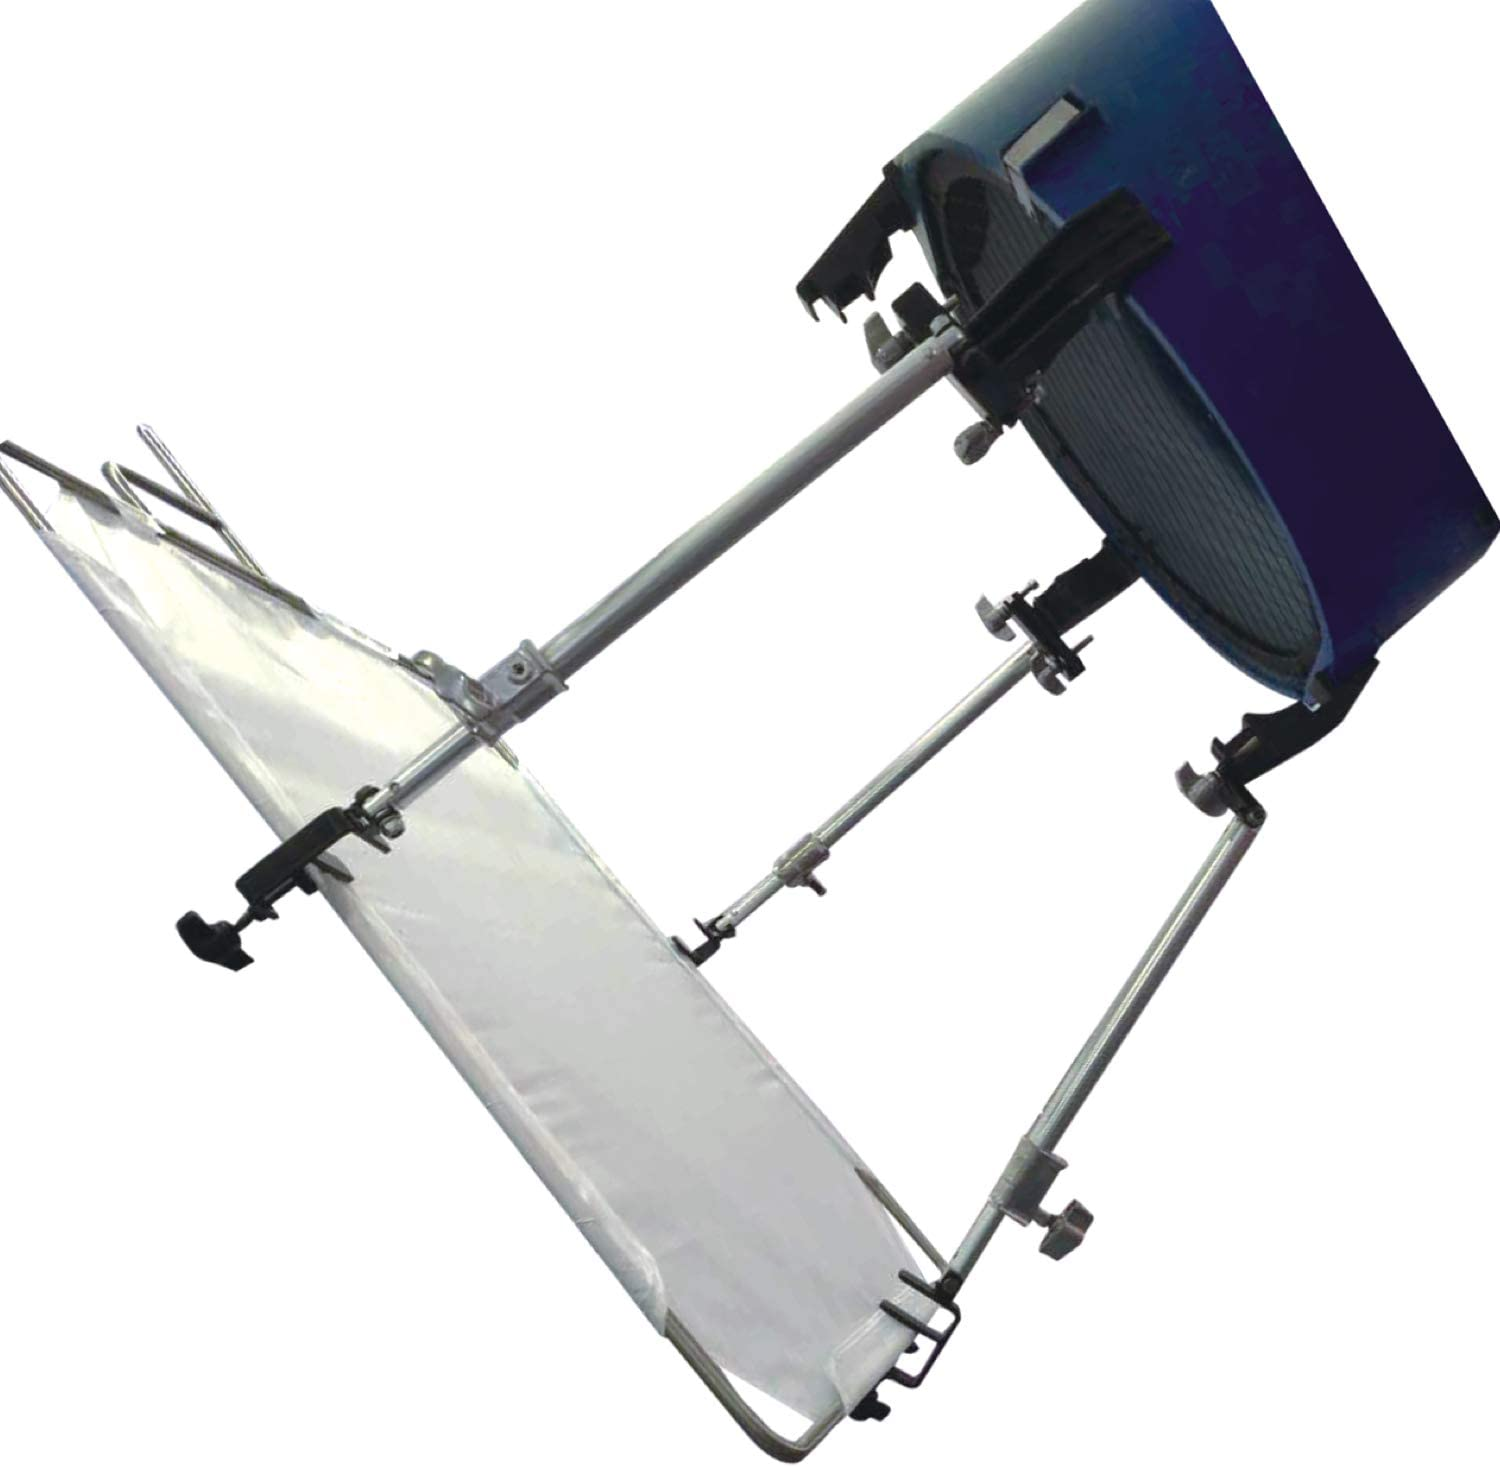 Sunset Foto Flag Extension Arm Holder with Articulating Clamps Scrim Flag Mount Photo Studio